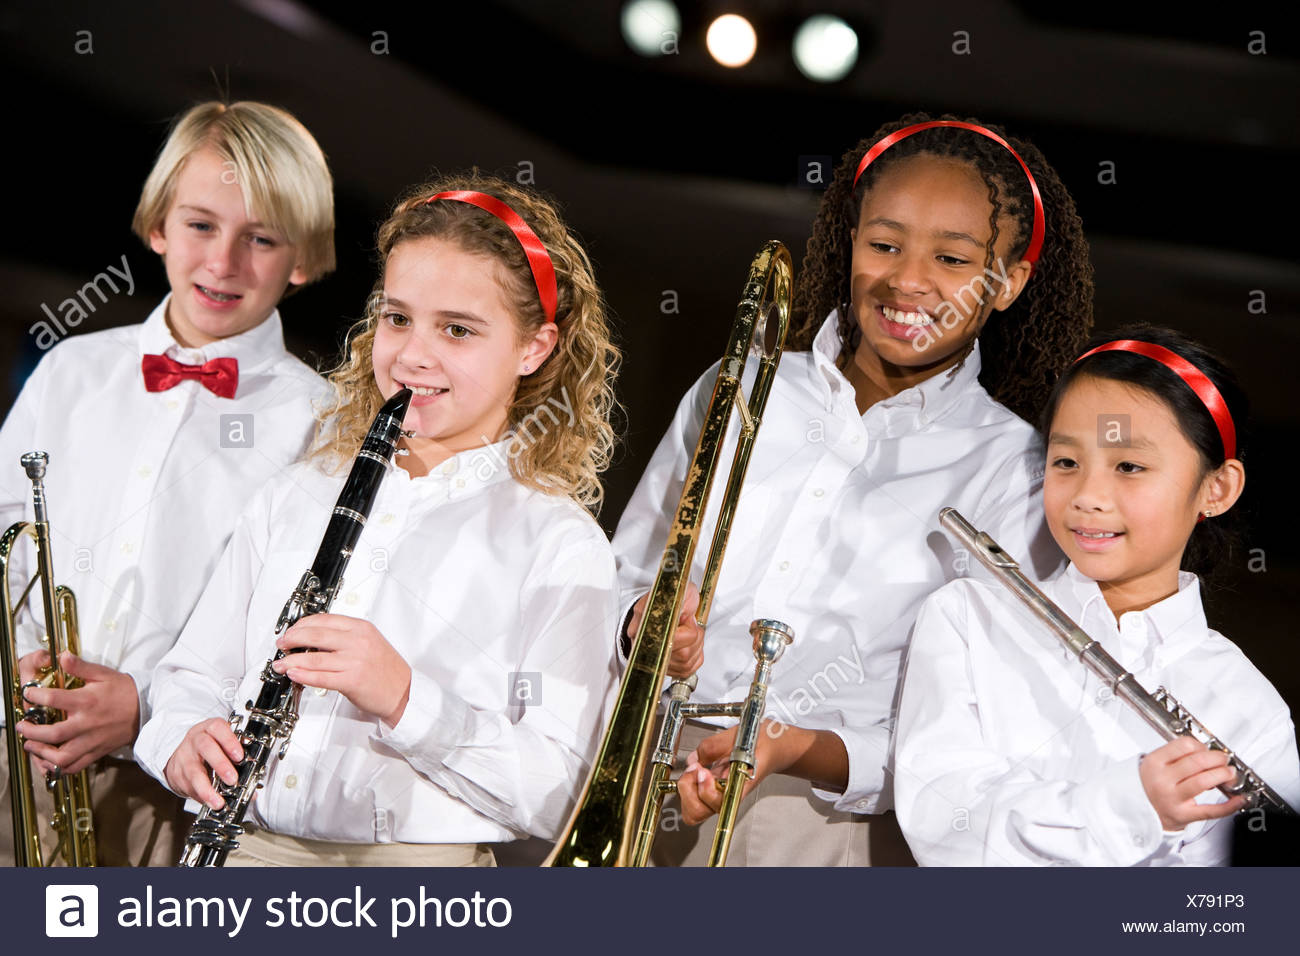 School children playing musical instruments in band - Stock Image